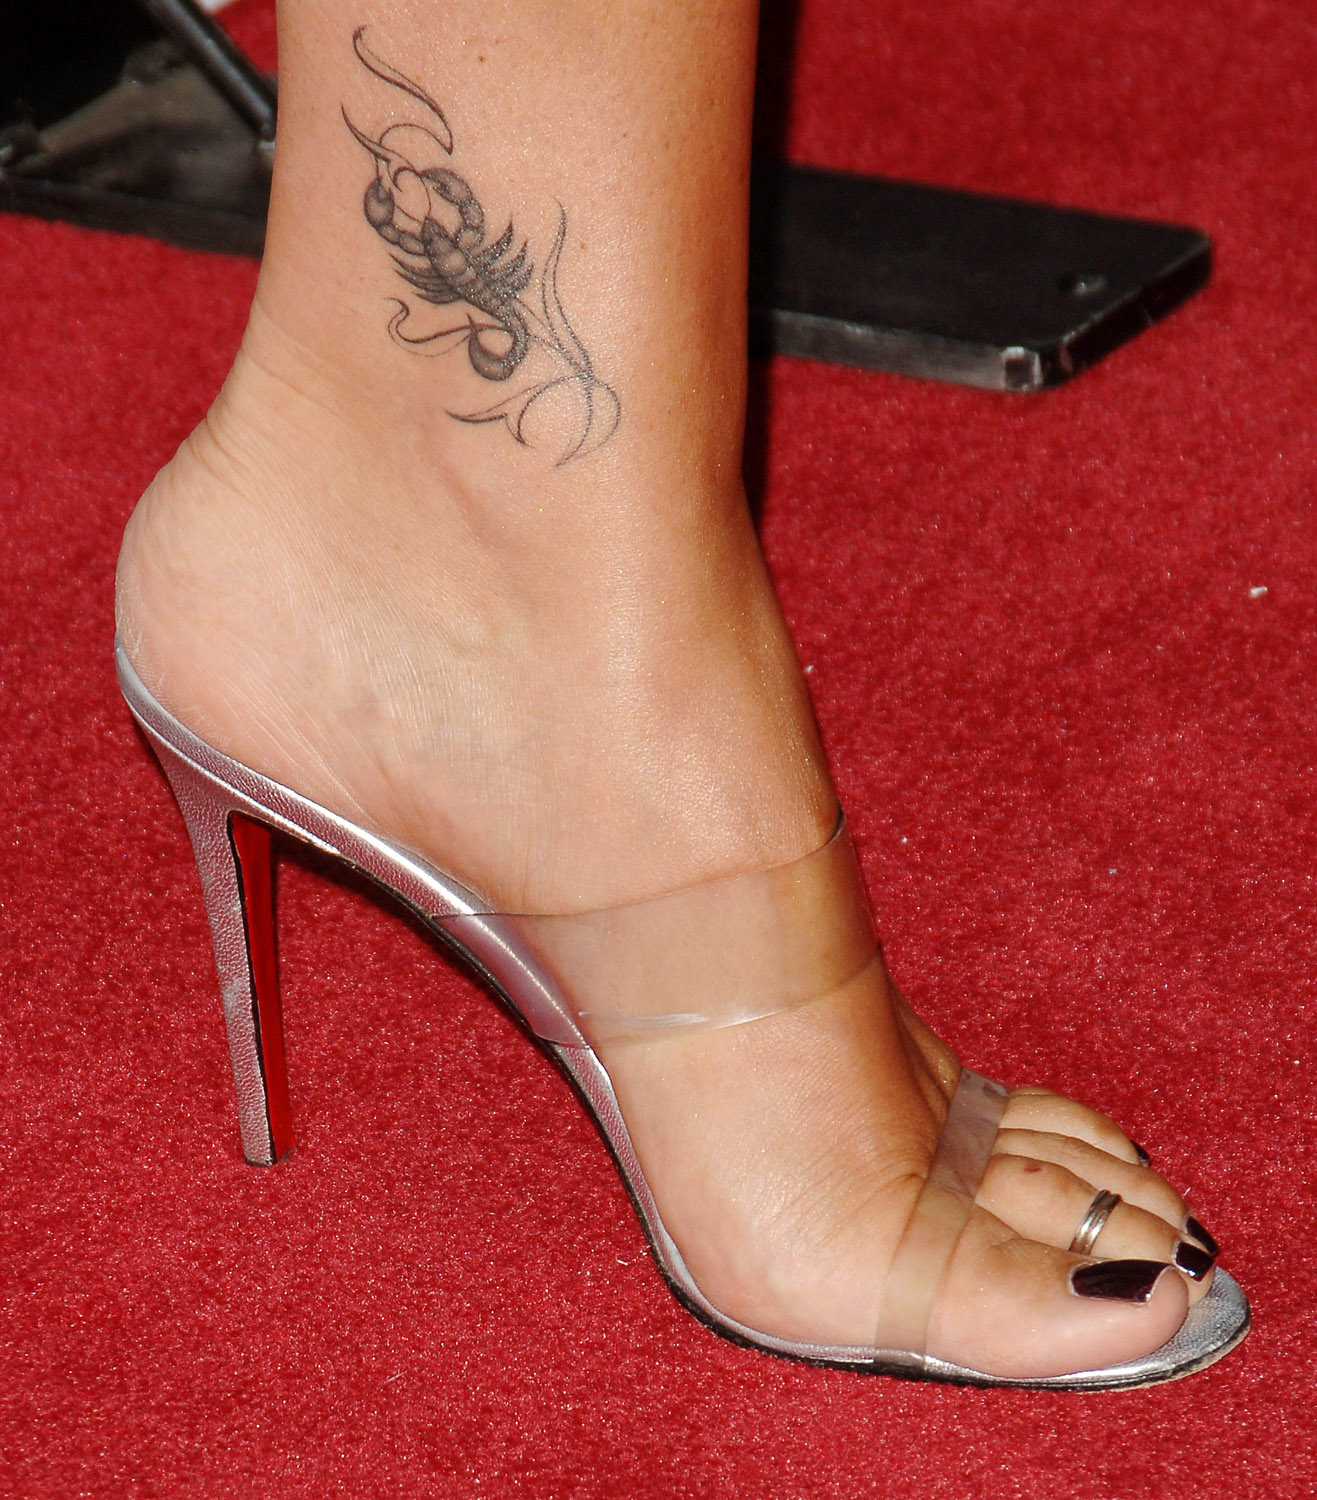 Scorpion Tattoo Design on Foot for Hot Girls - YusraBlog.com